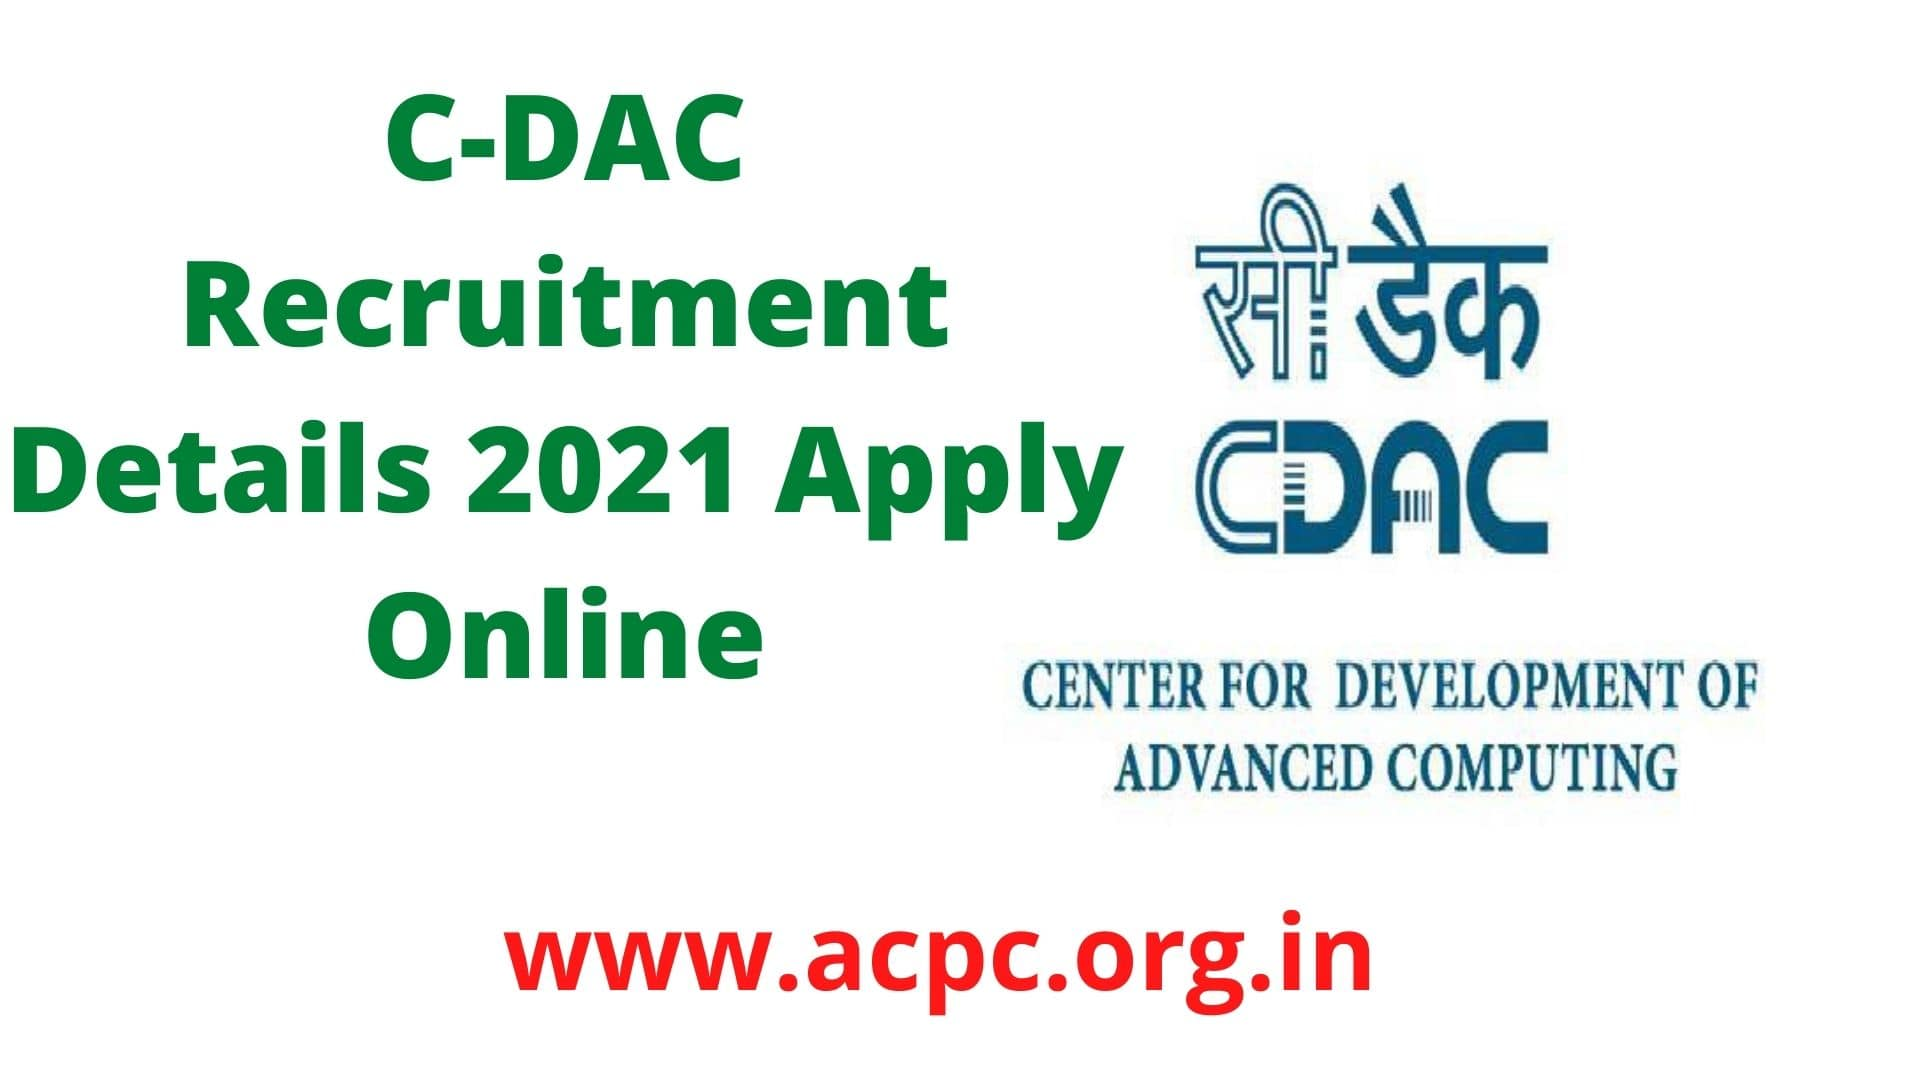 C-DAC Recruitment Details 2021 Apply Online | Selection Process | Application Fee